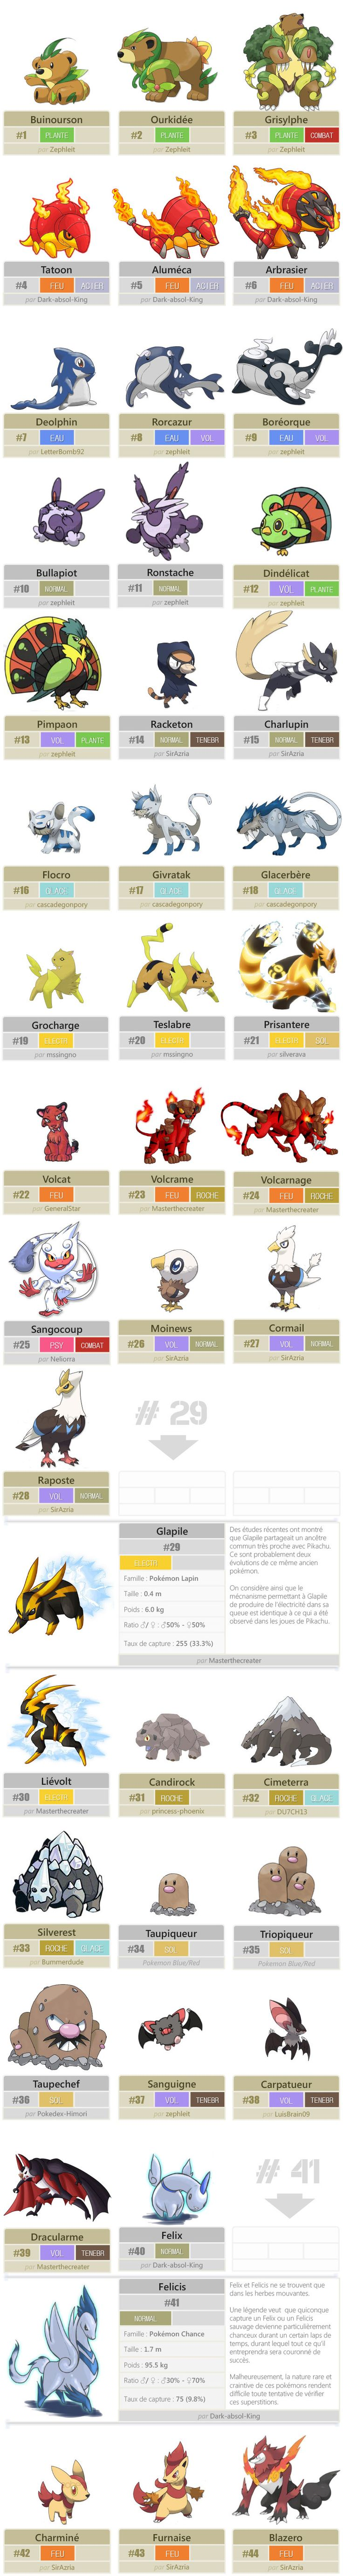 These fakemon are A1 XD